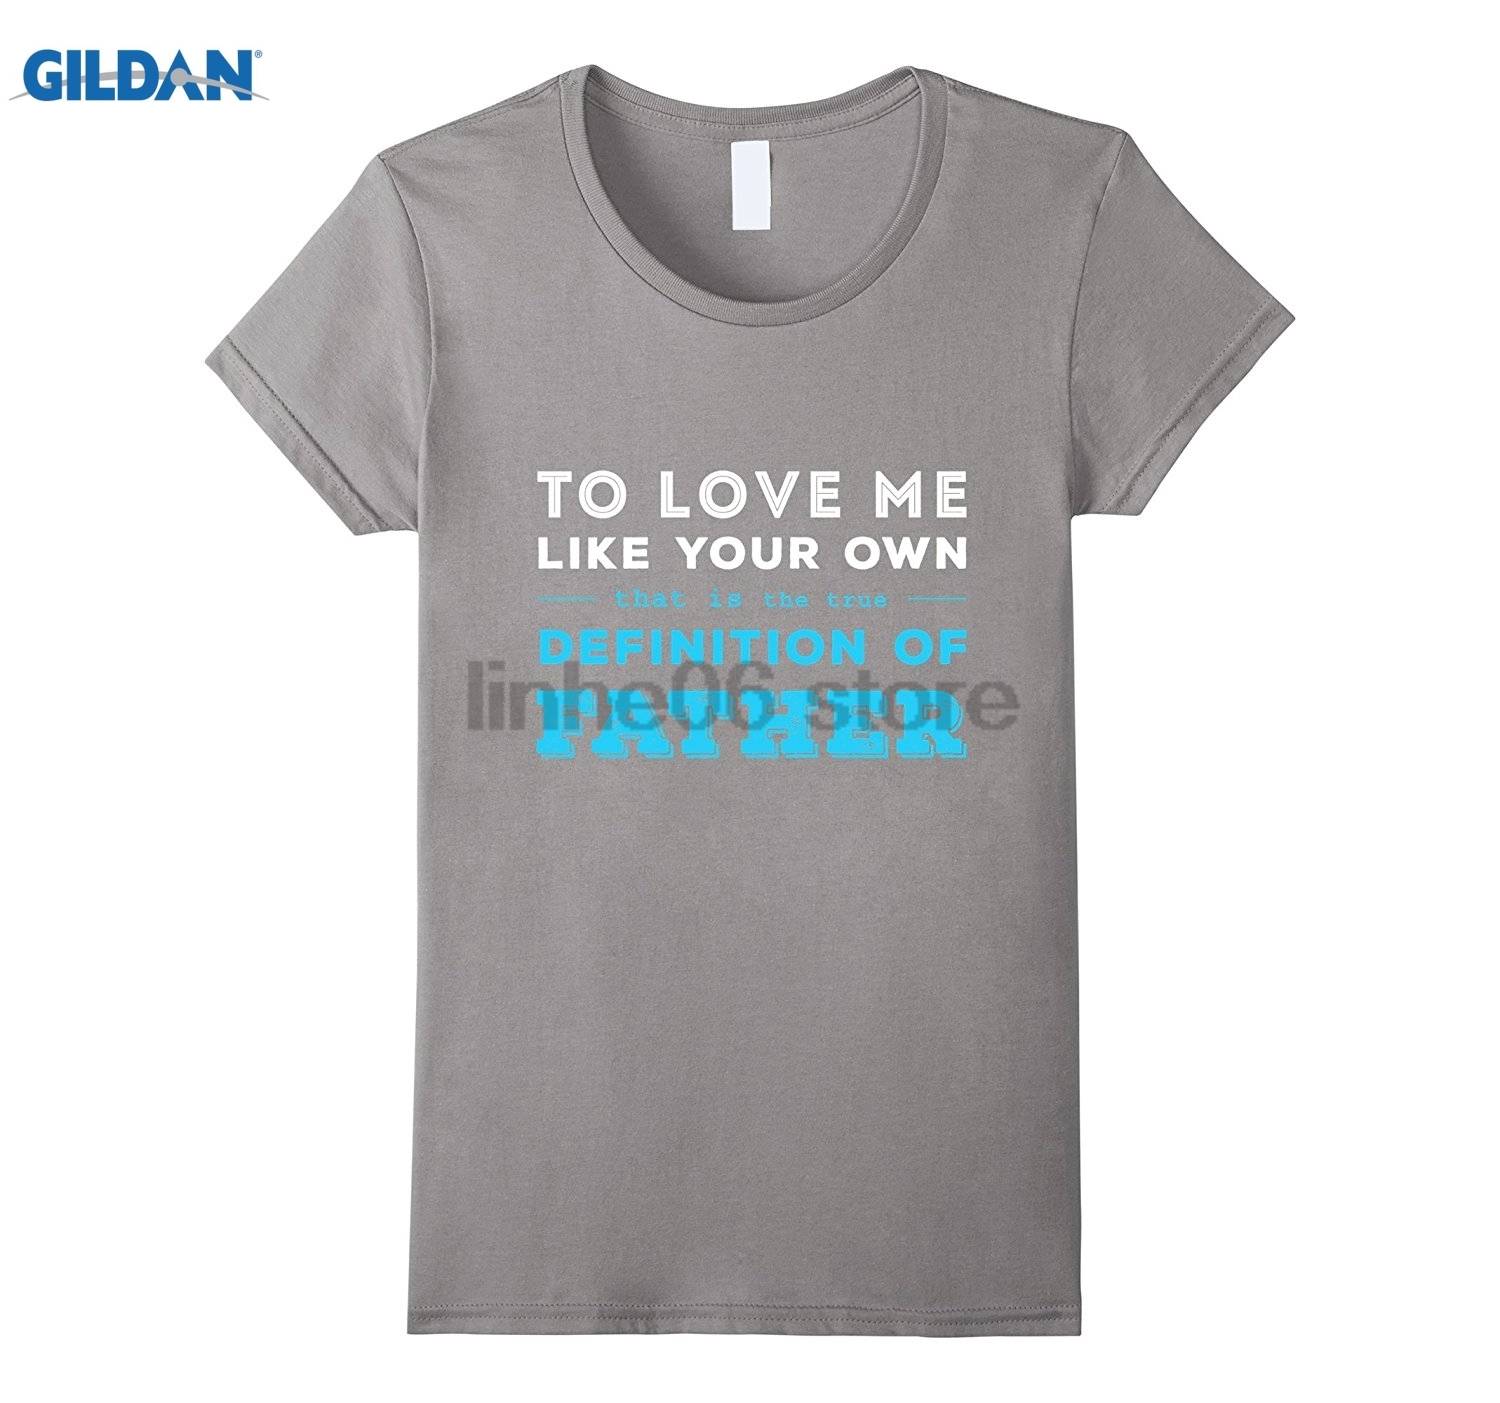 GILDAN Love Me Like Your Own, True Definition of Dad, Father Shirt Printed T-shirt Mothers Day Ms. T-shirt